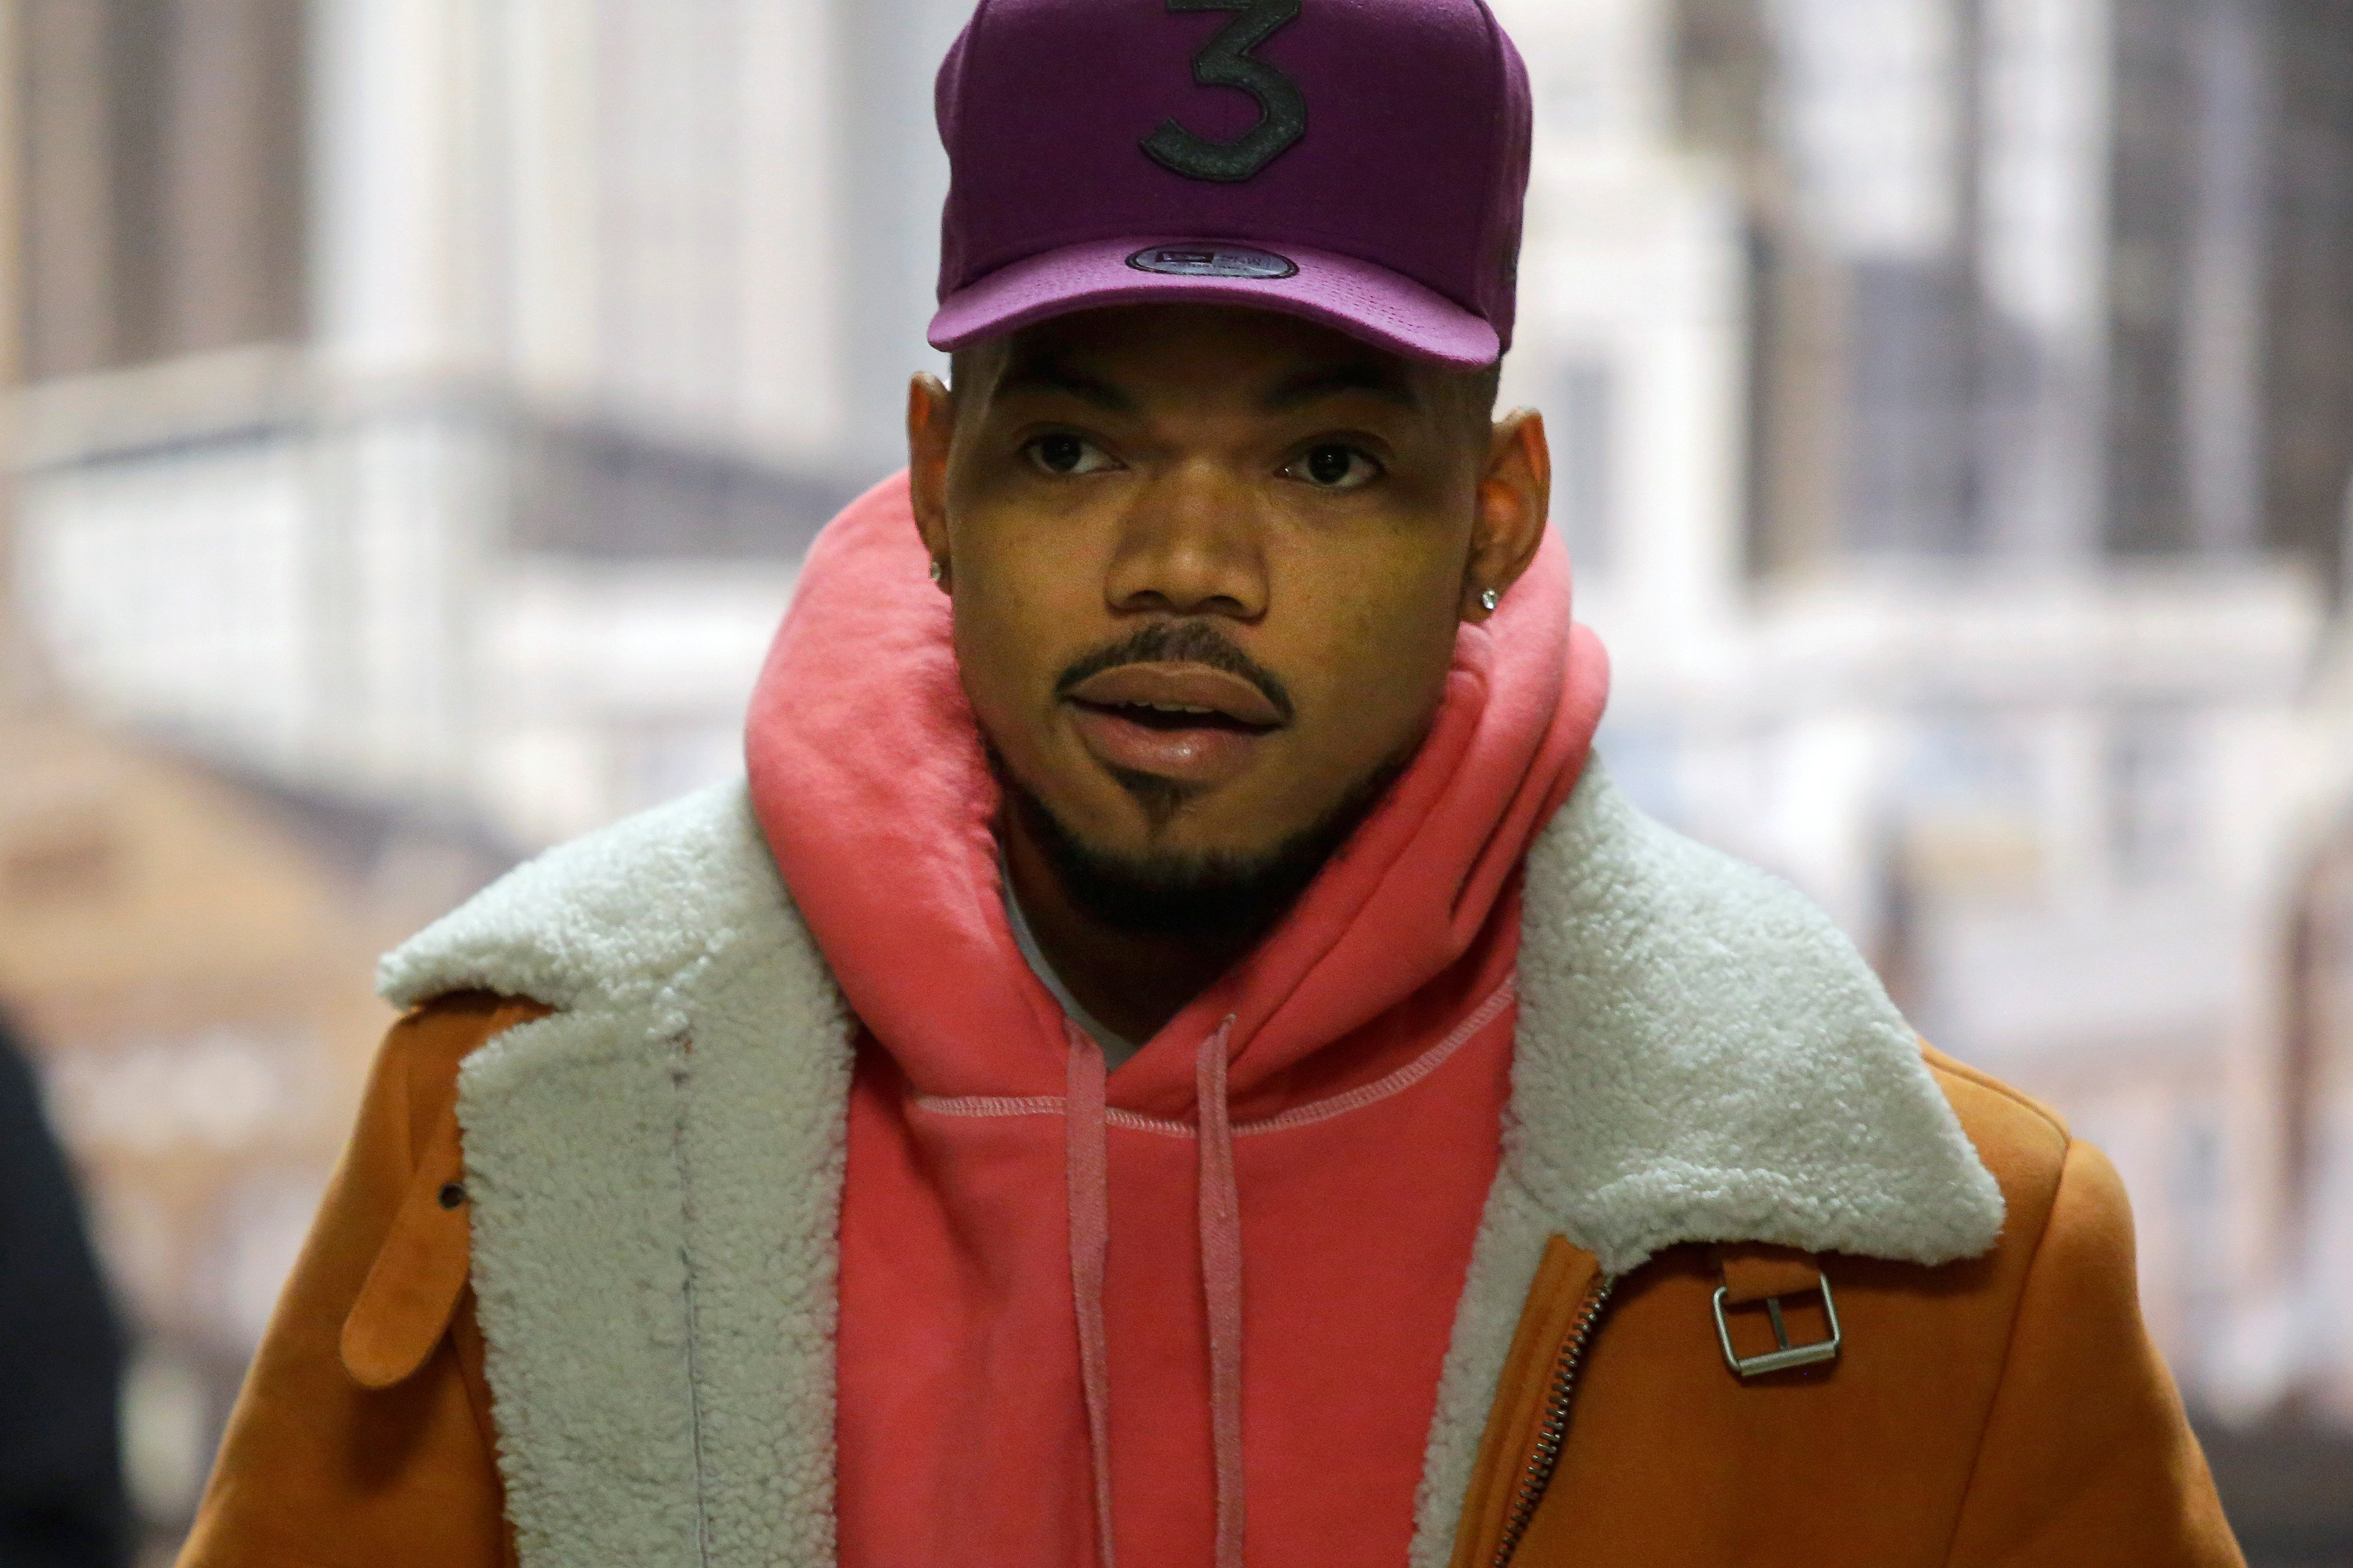 Chance the Rapper on 'sabbatical' to study the Bible